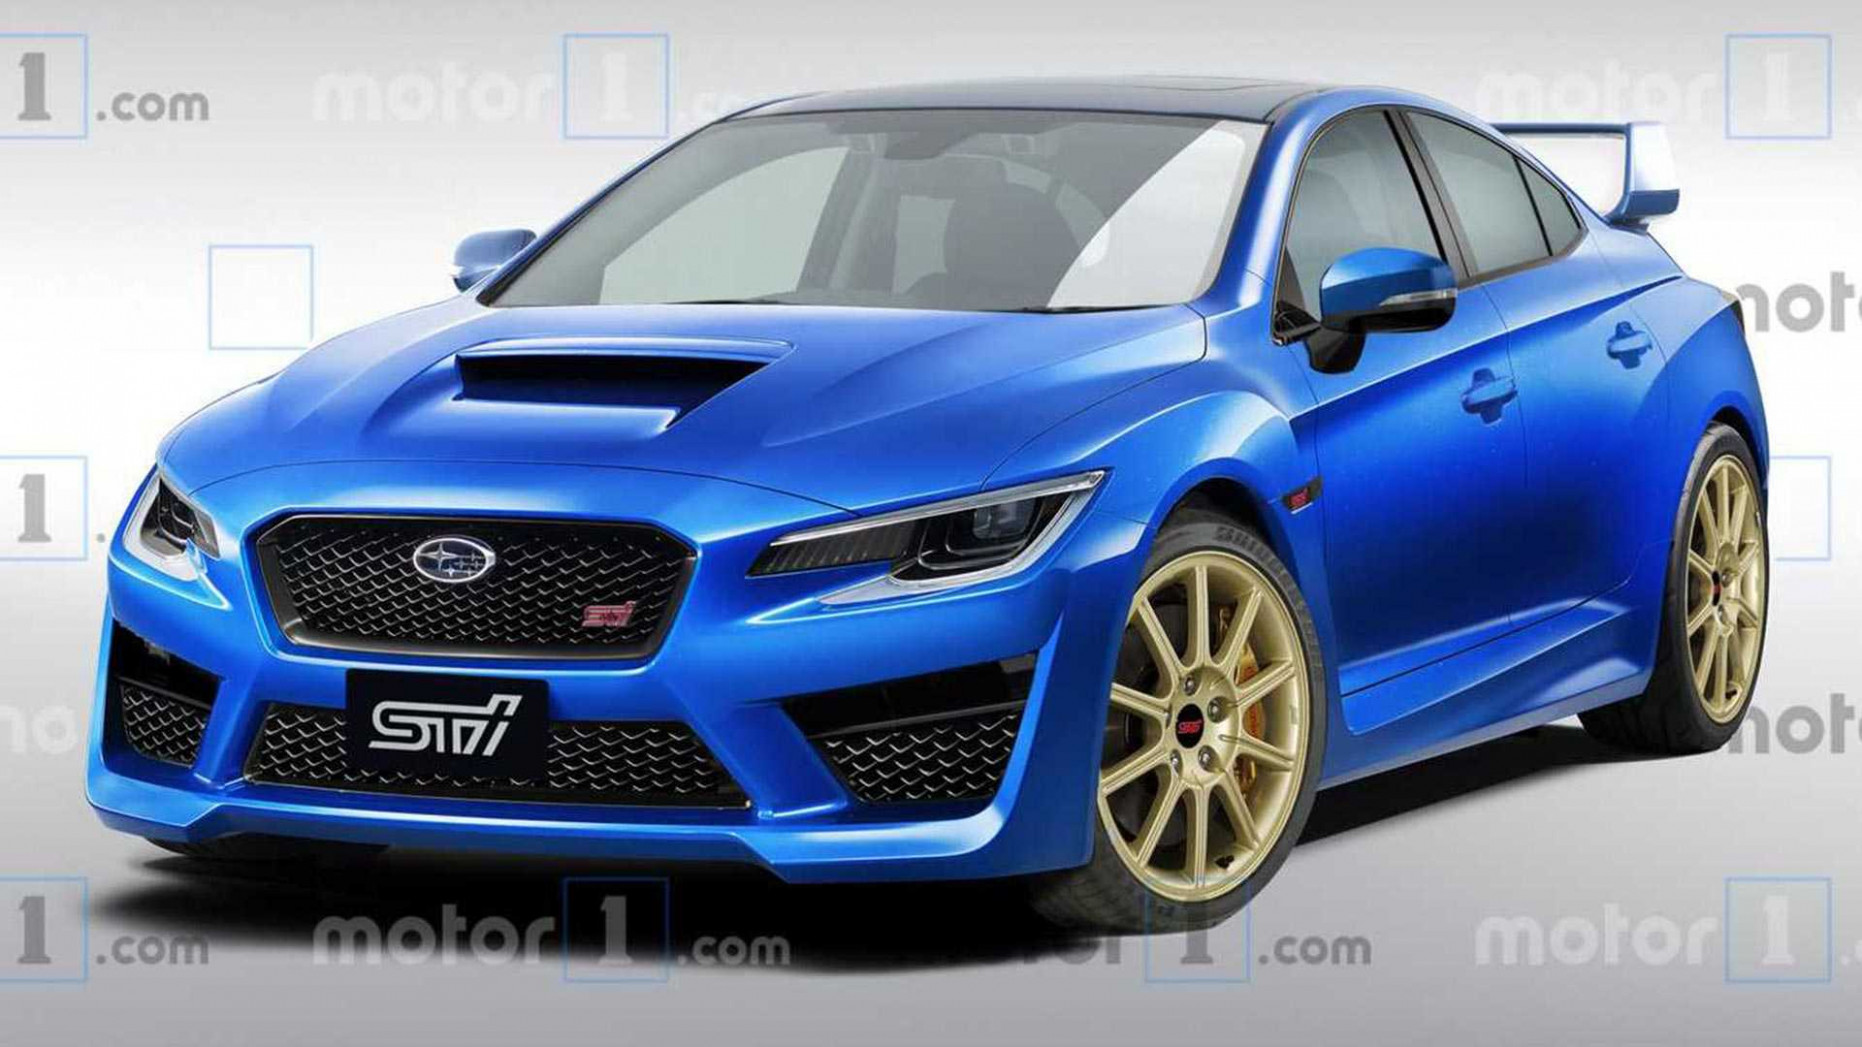 Performance and New Engine Subaru Impreza Wrx Sti 2022